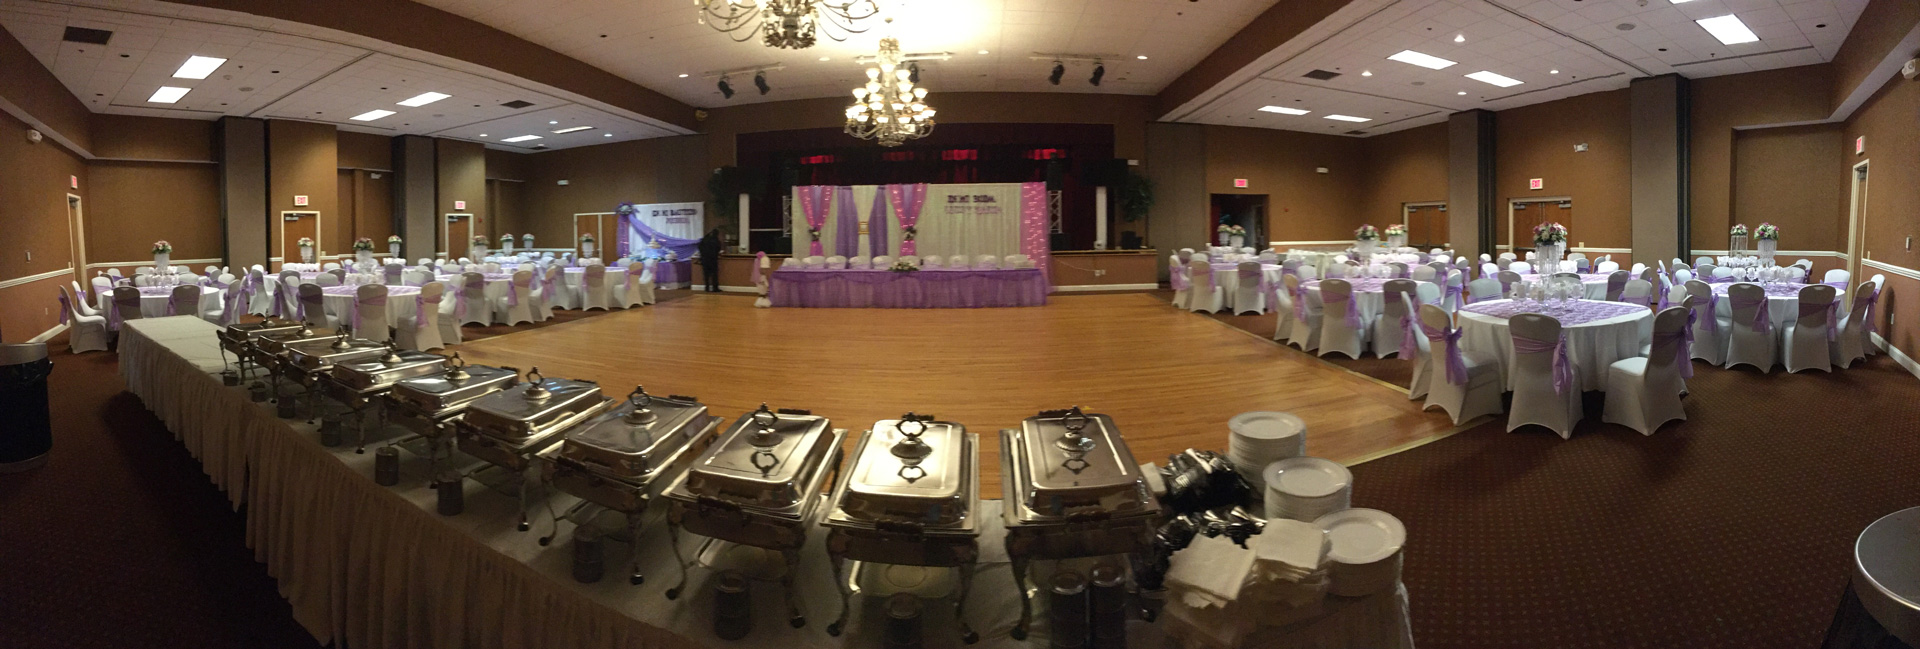 Ukrainian American Cultural Center - Main Ballroom panoramic center